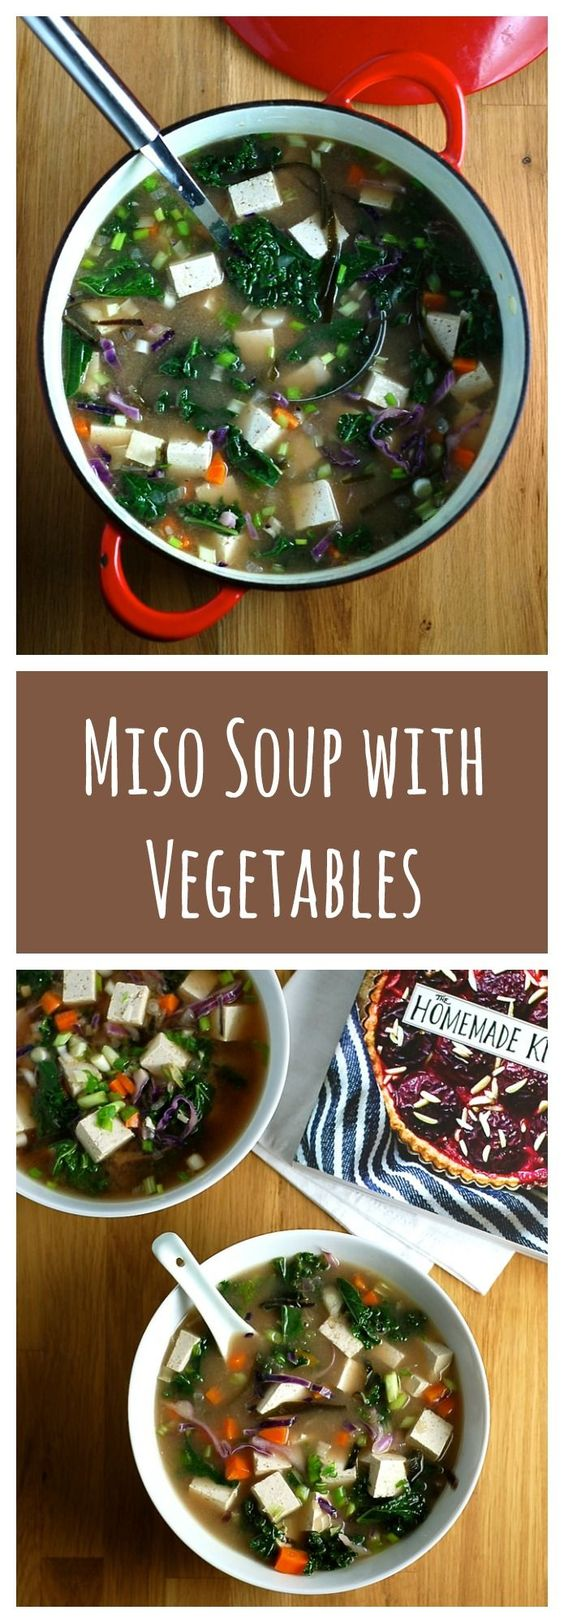 Miso Soup with Vegetables | Recipe | Miso Soup, Soups and Full Of